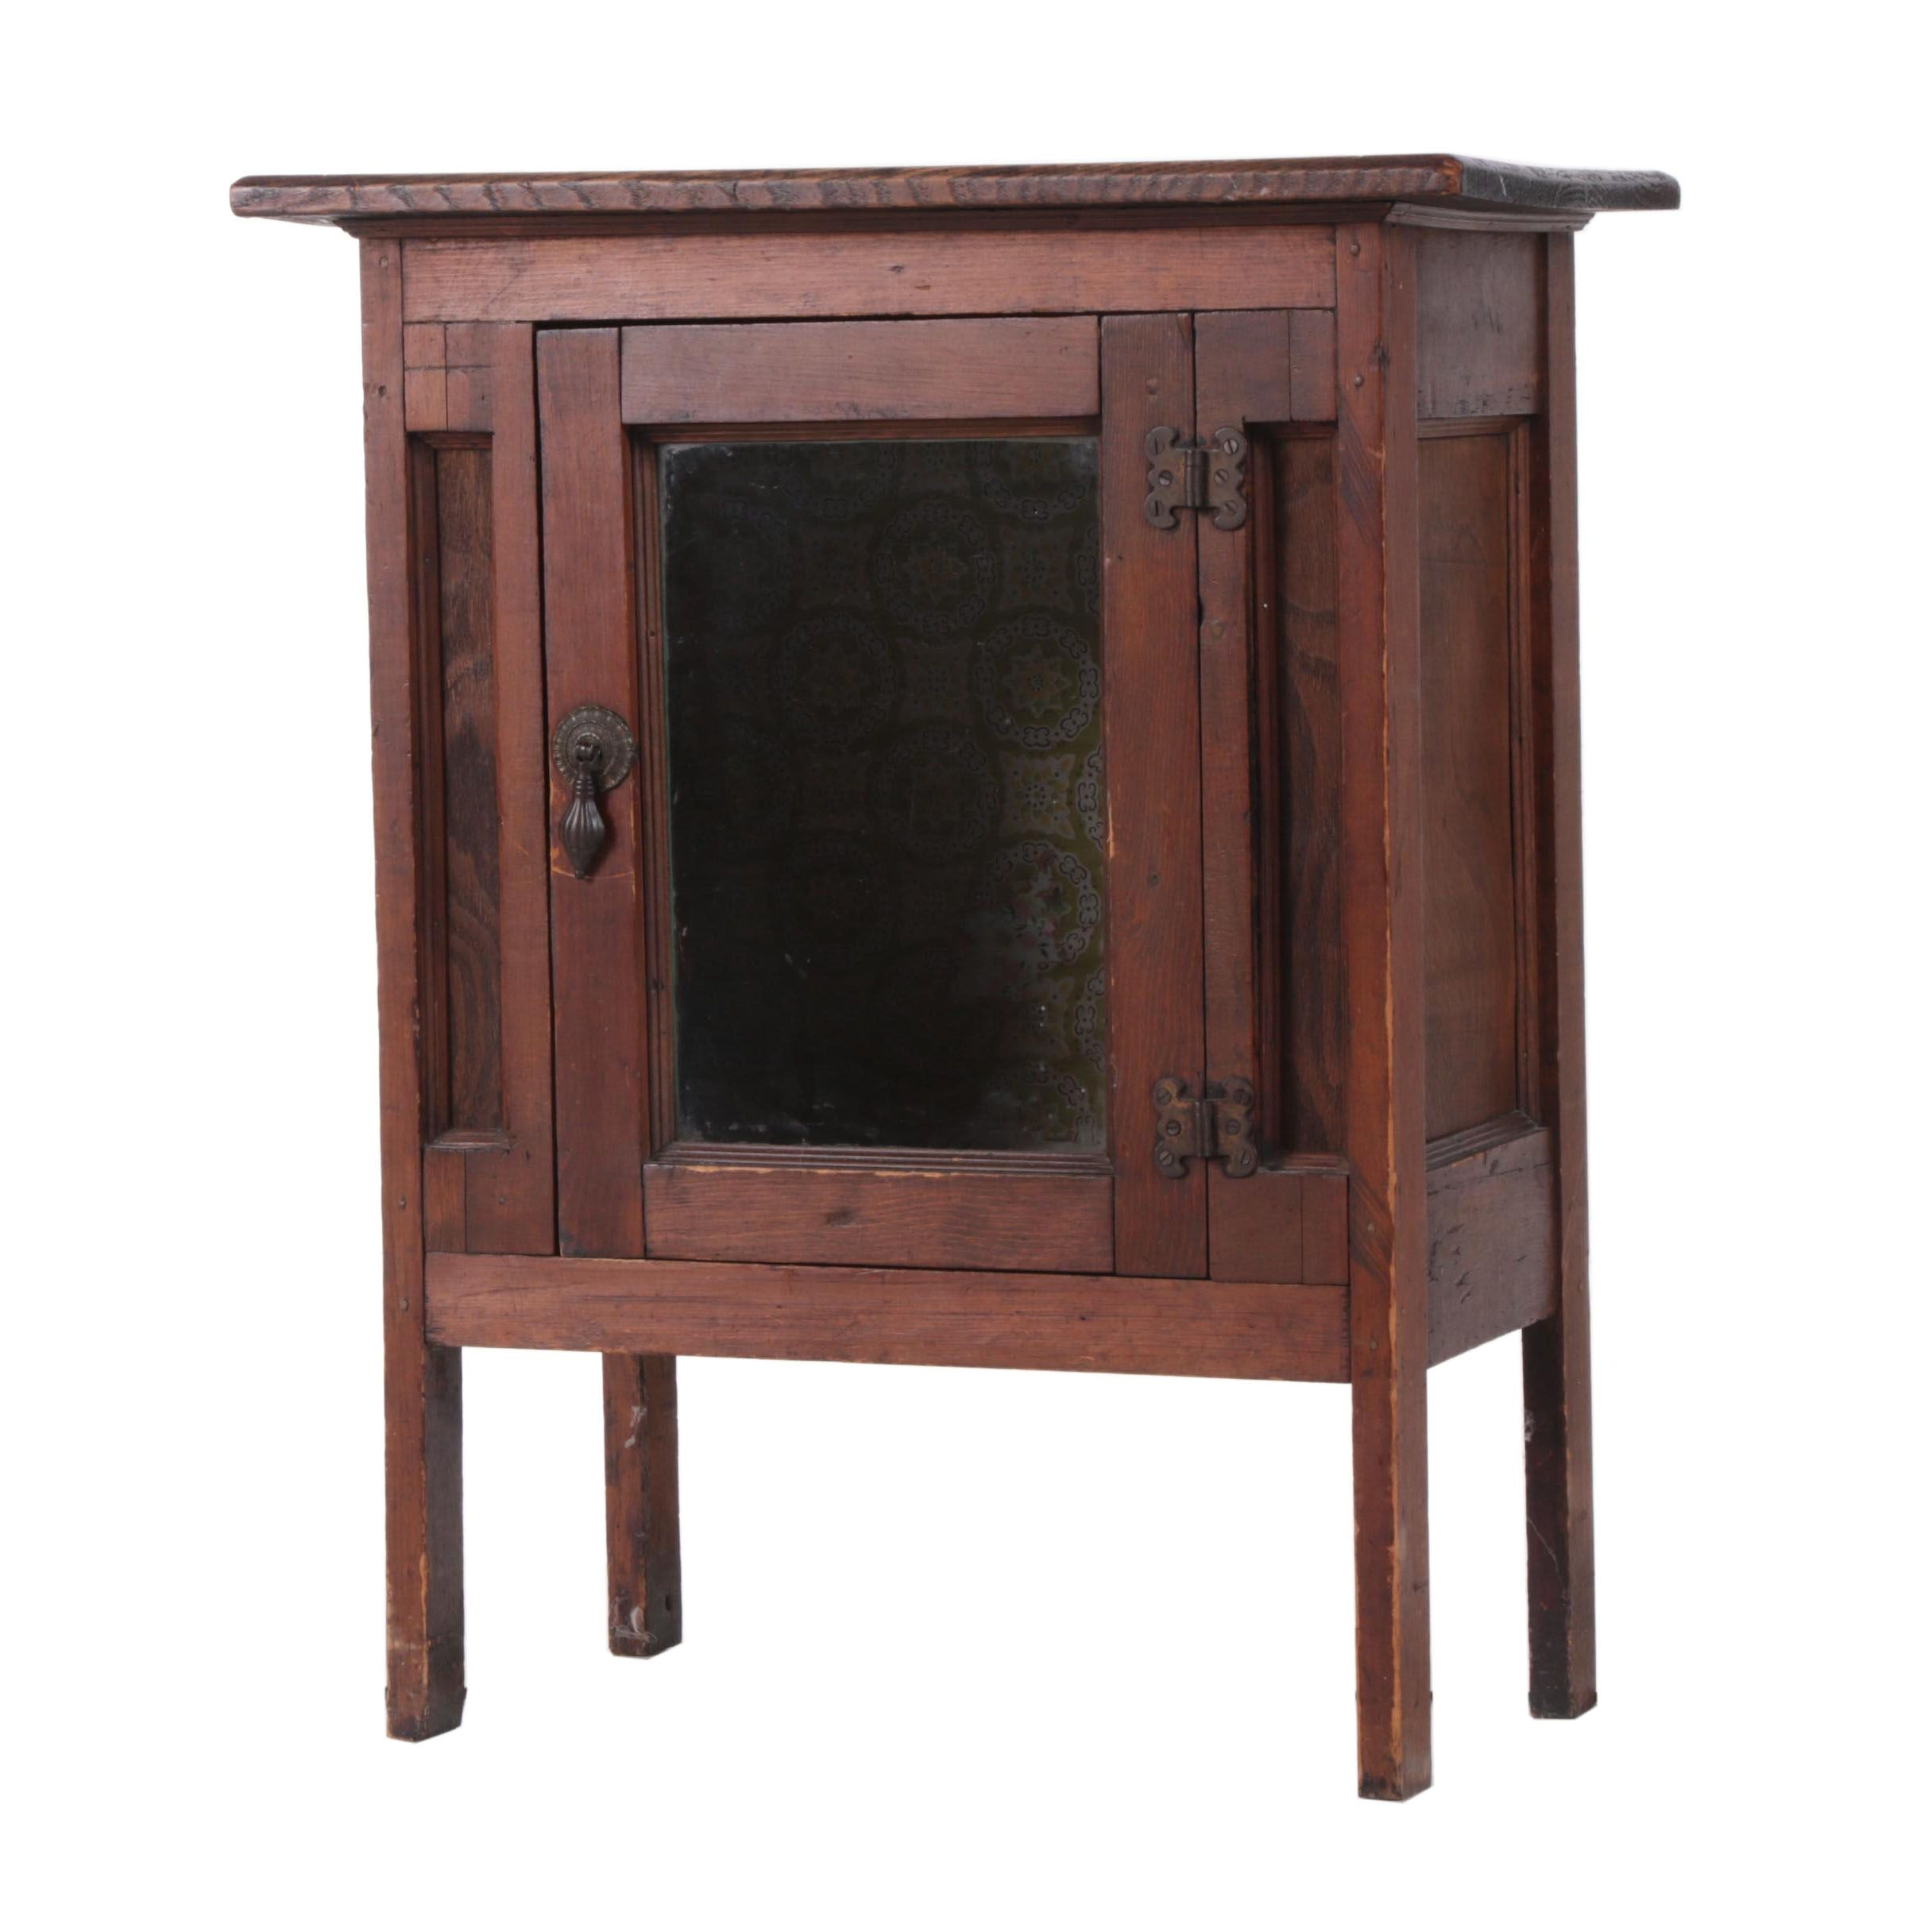 Small Wood Display Cabinet with Glass Door